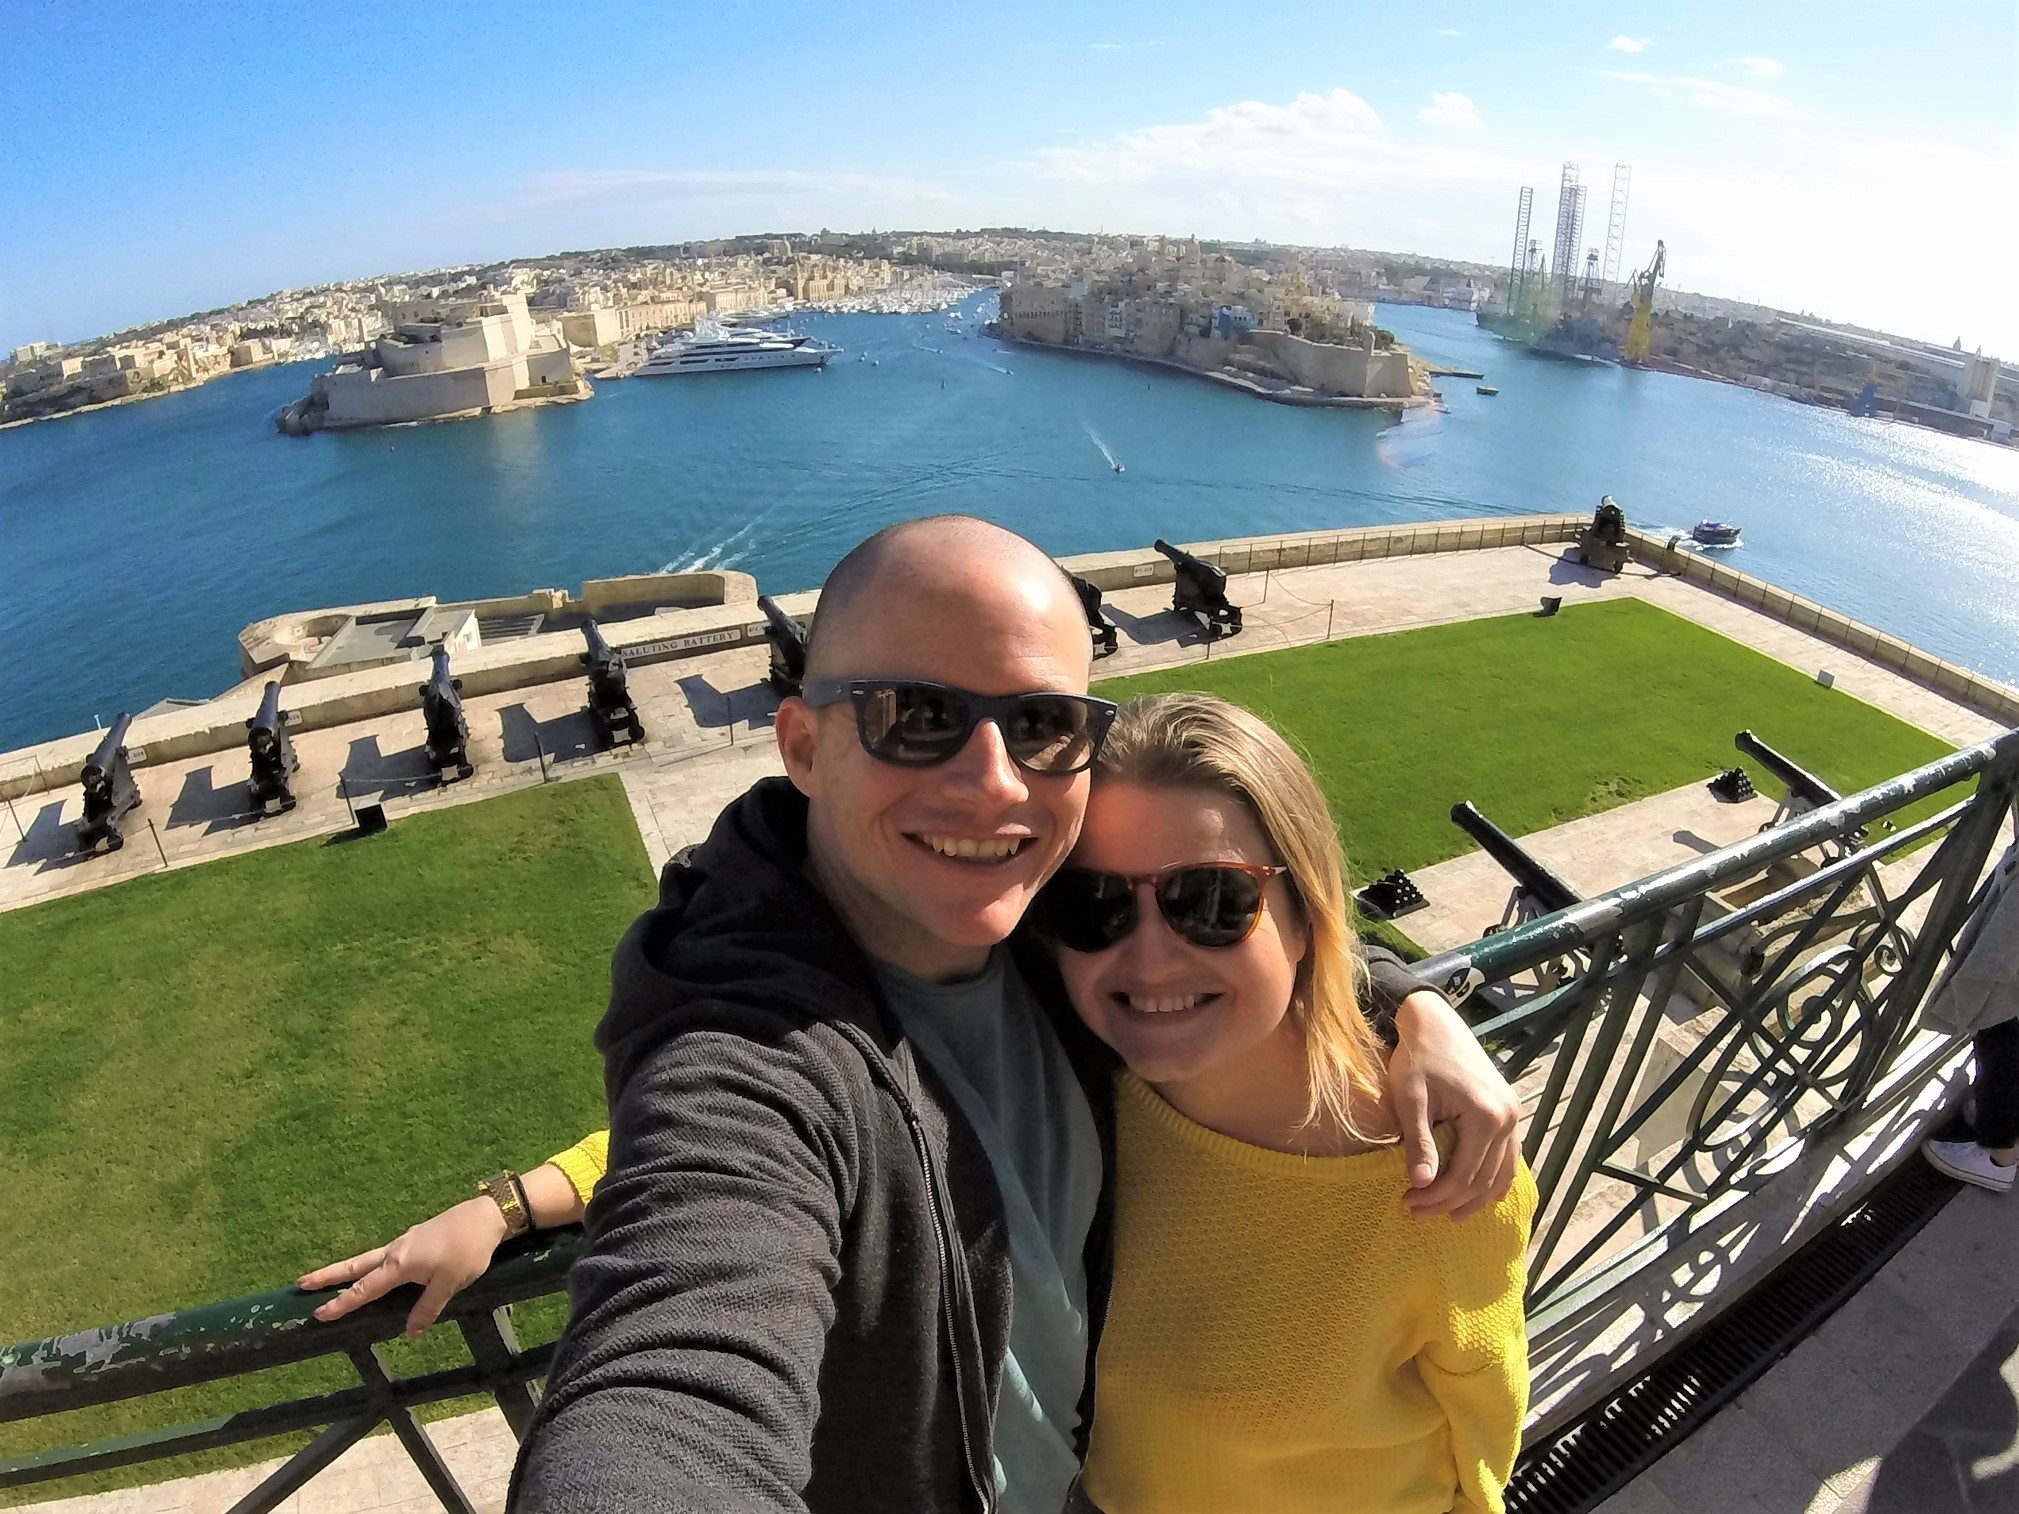 Life after oil: A couple's journey from employment uncertainty to Maltese dream